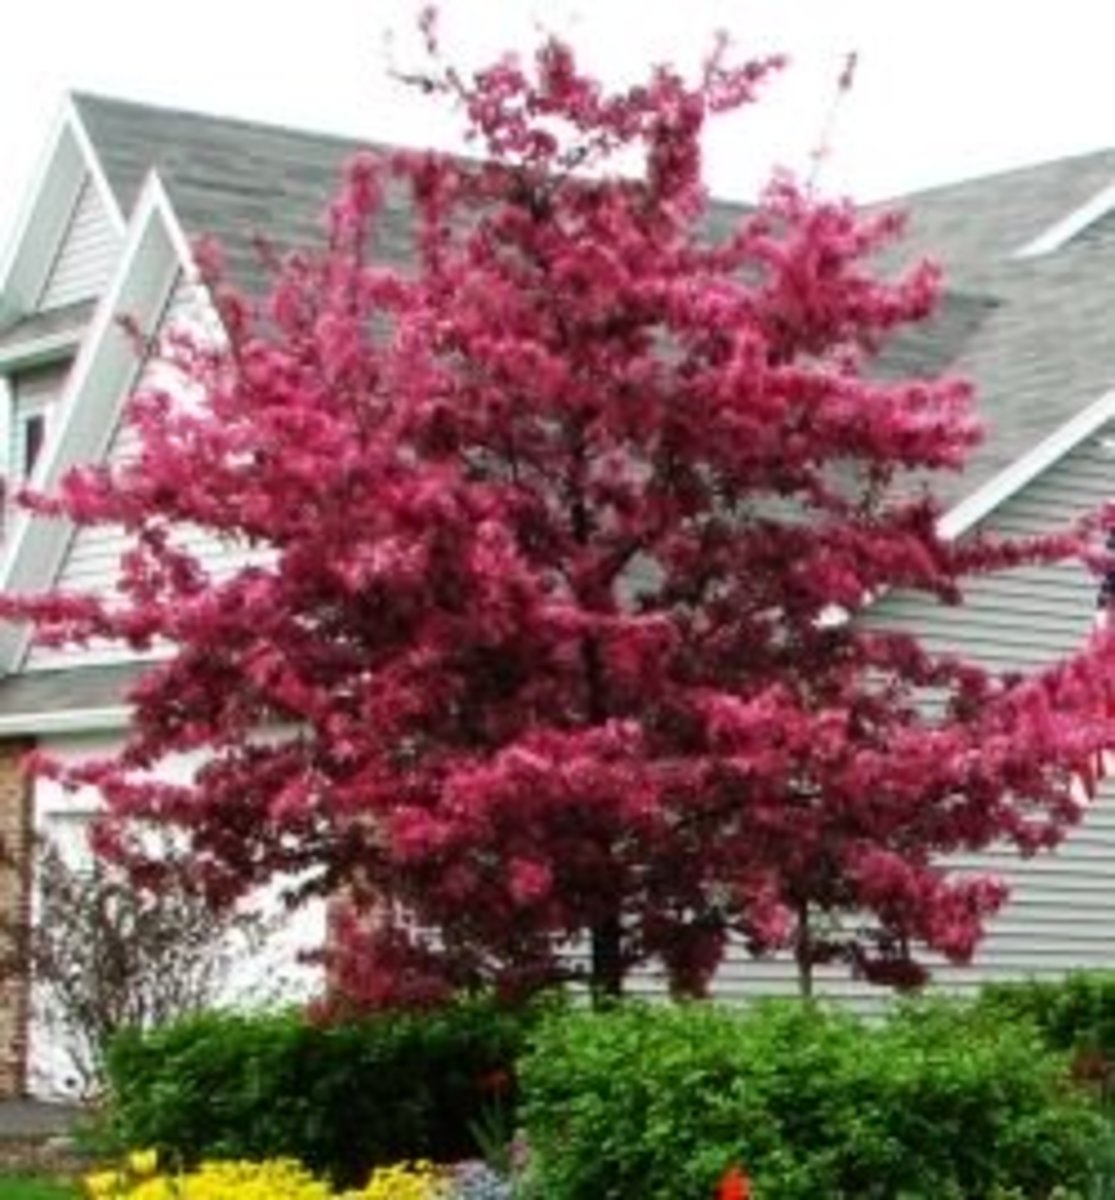 Flowering Crabapple Trees - Four Seasons of Beauty